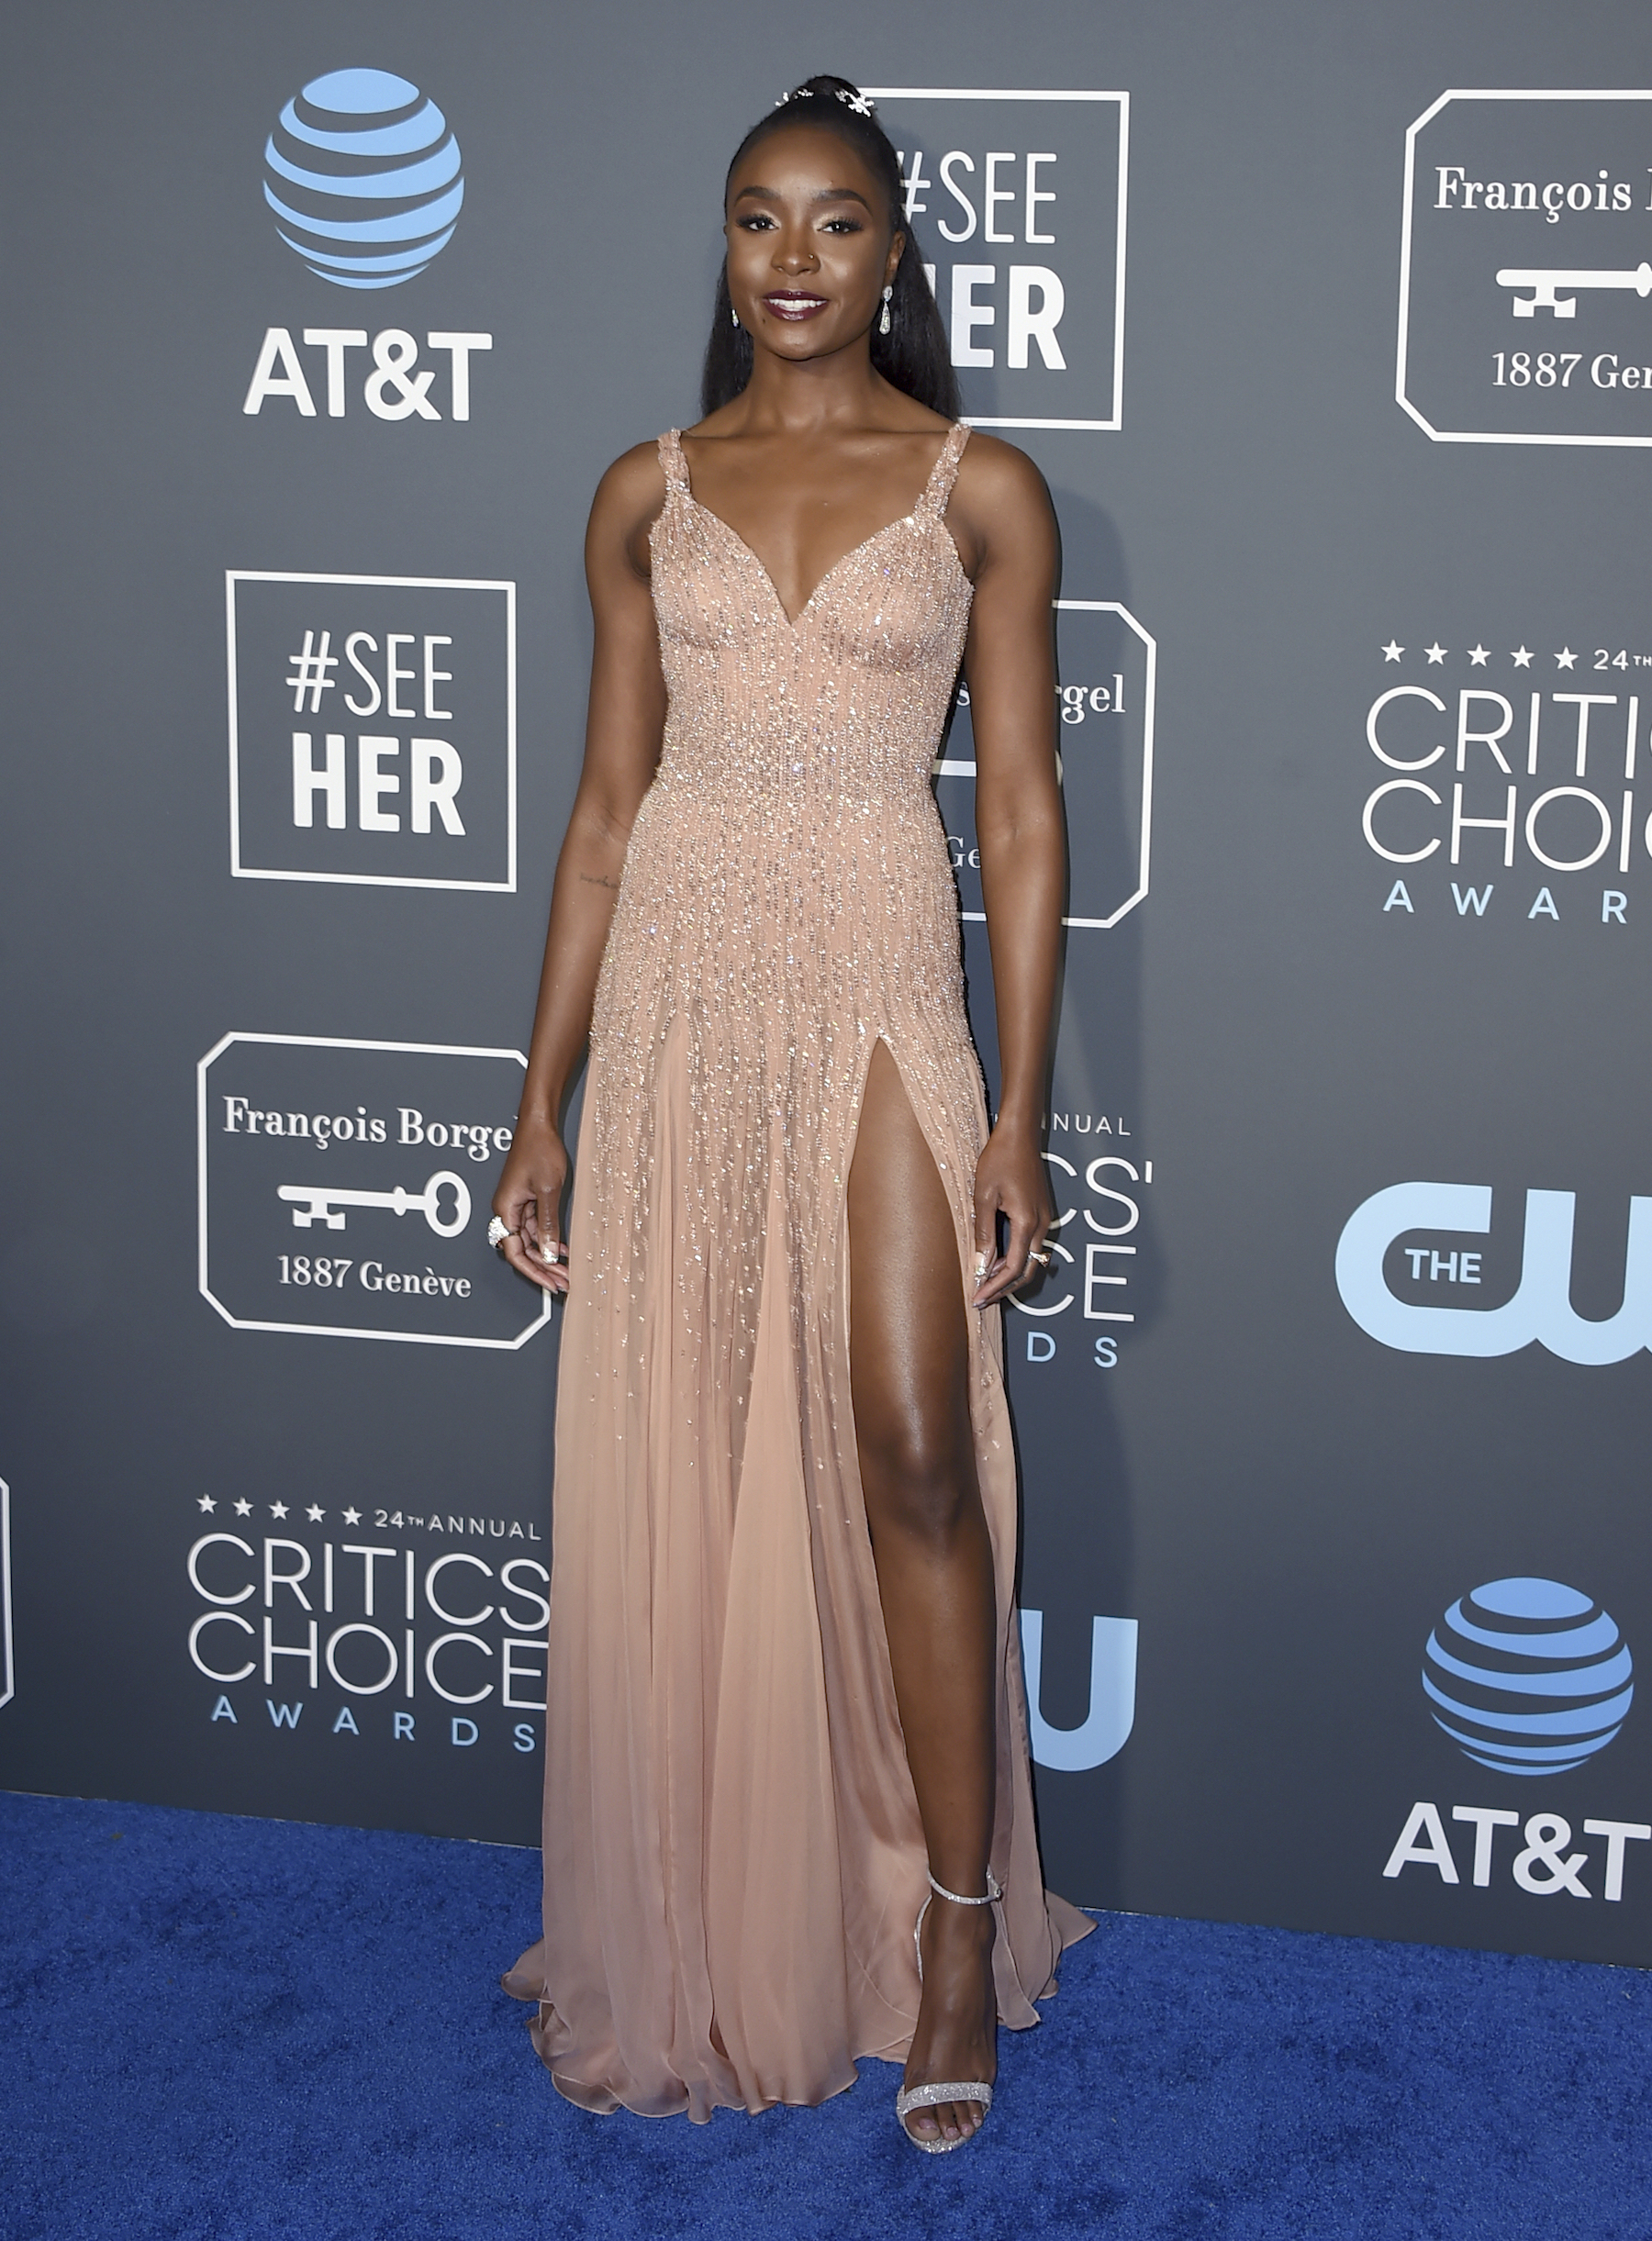 <div class='meta'><div class='origin-logo' data-origin='AP'></div><span class='caption-text' data-credit='Jordan Strauss/Invision/AP'>KiKi Layne arrives at the 24th annual Critics' Choice Awards on Sunday, Jan. 13, 2019, at the Barker Hangar in Santa Monica, Calif.</span></div>